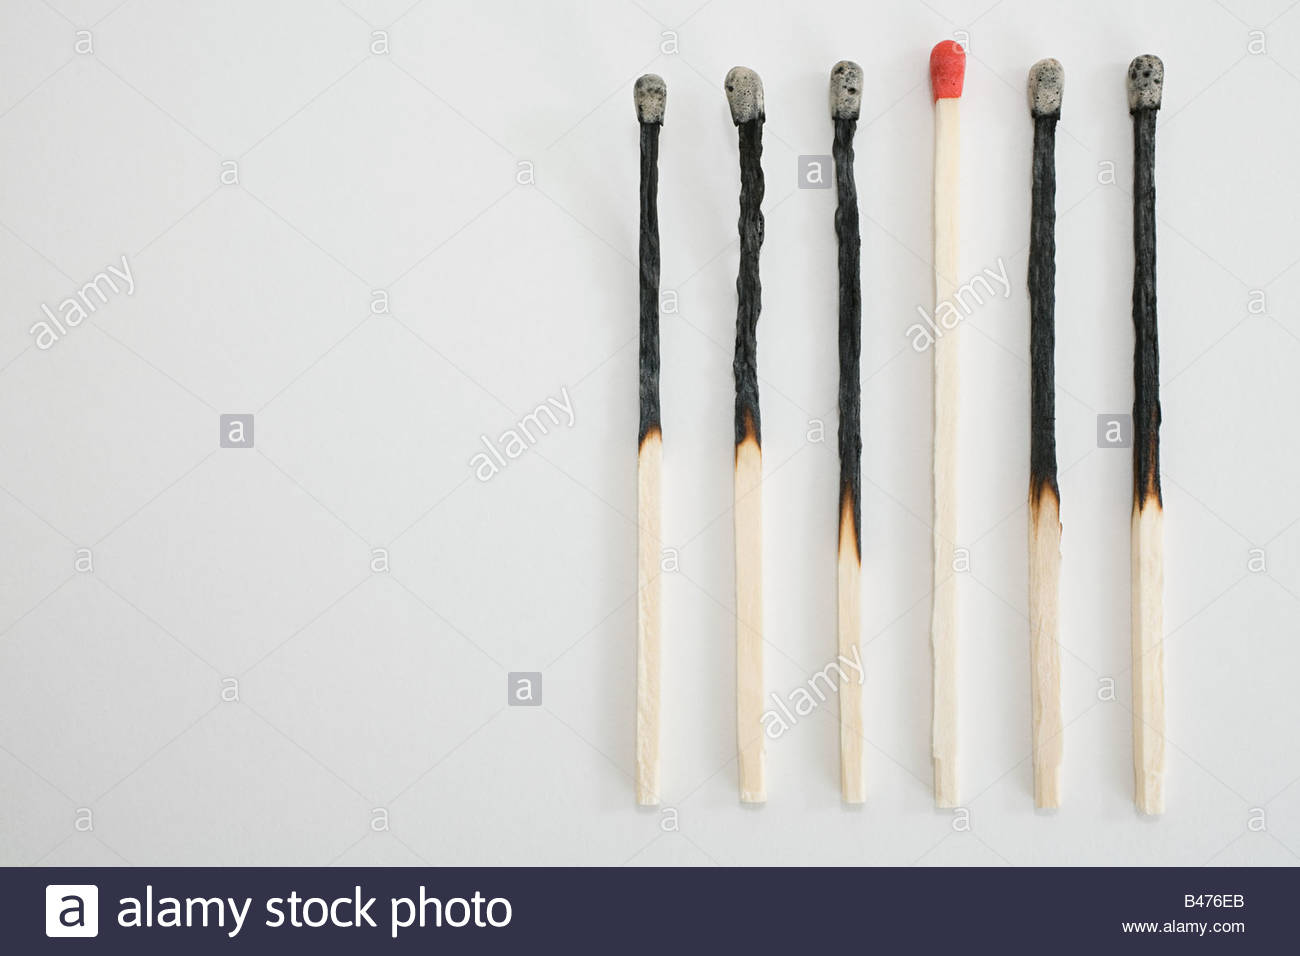 An unlit and burnt matches in a row Stock Photo